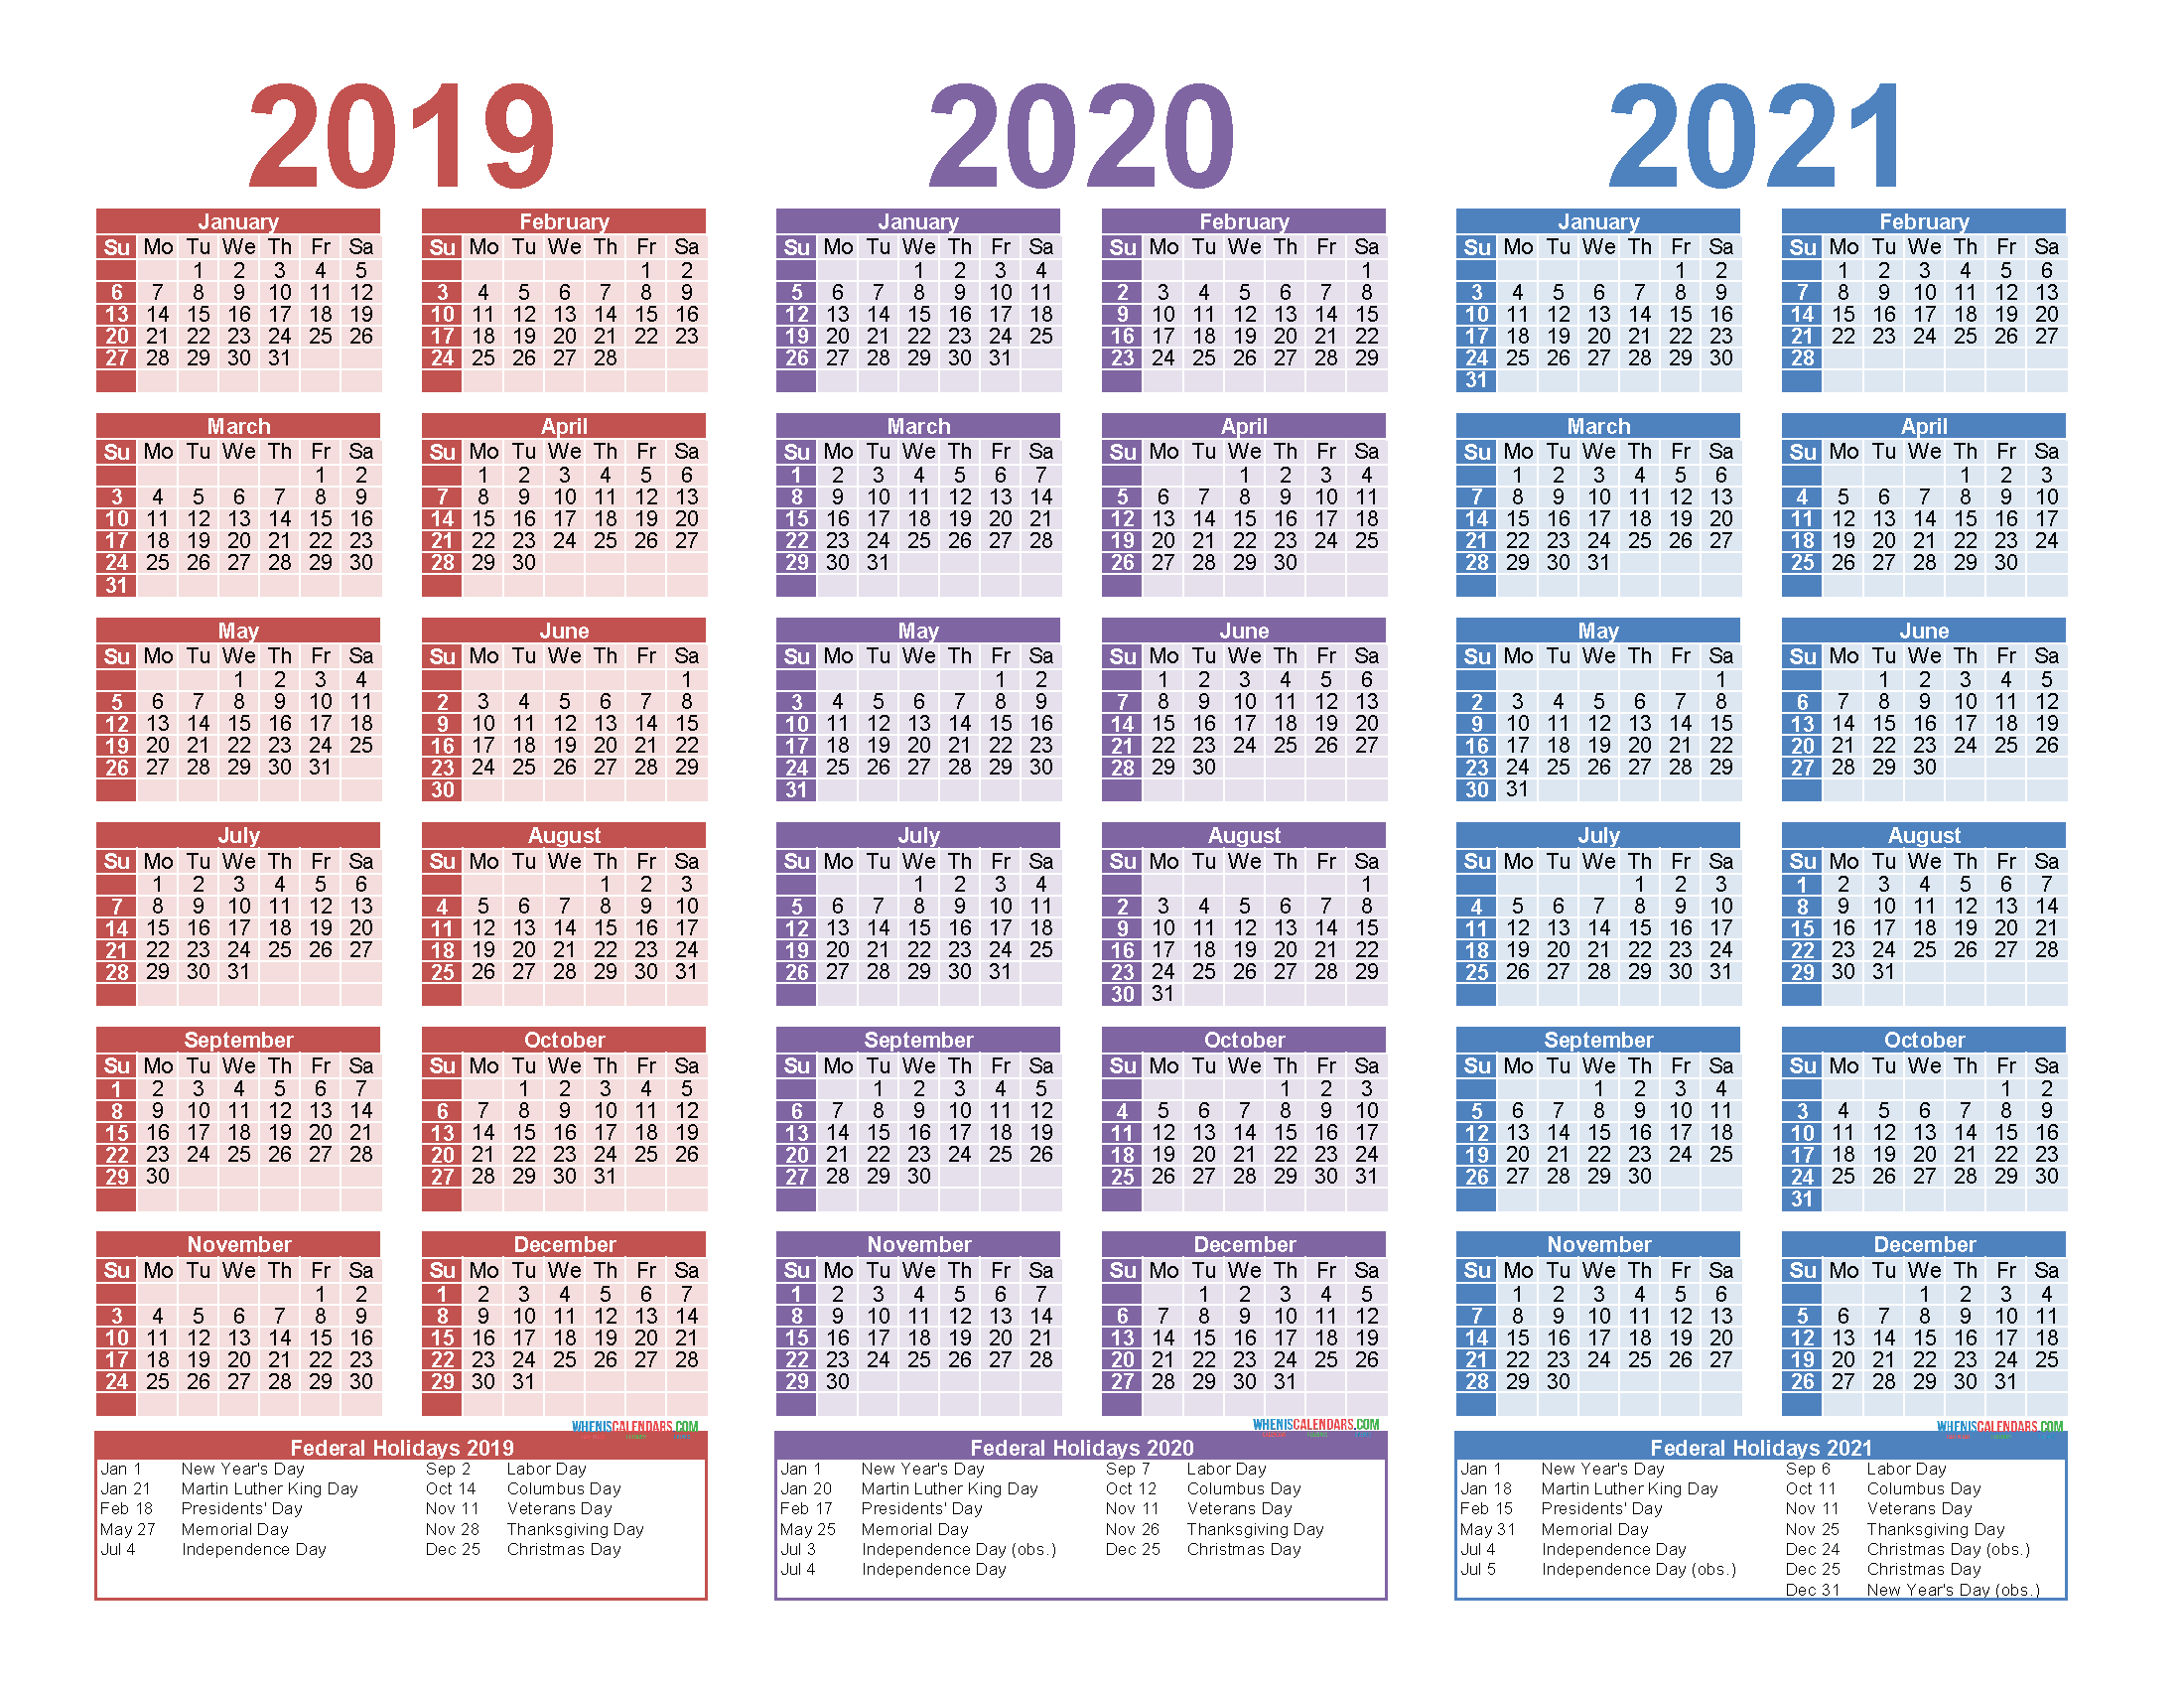 Free Printable 2020 2021 Calendar.Free Printable 2019 2020 2021 Calendar With Holidays Free